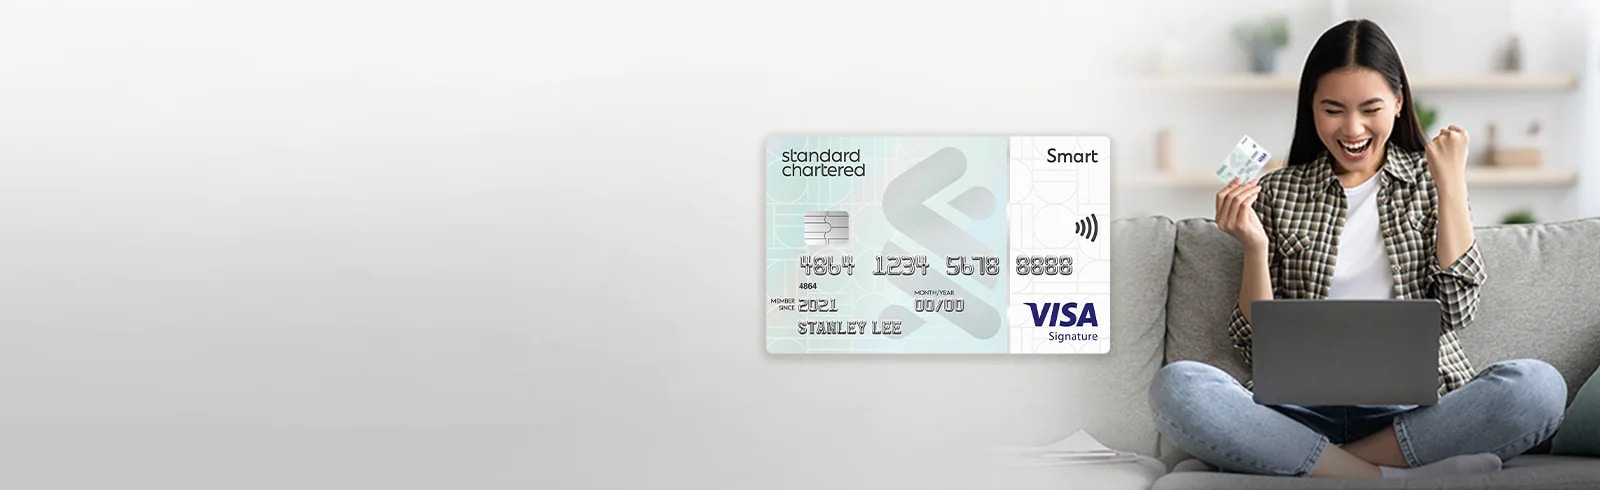 Text, Credit Card, Driving License